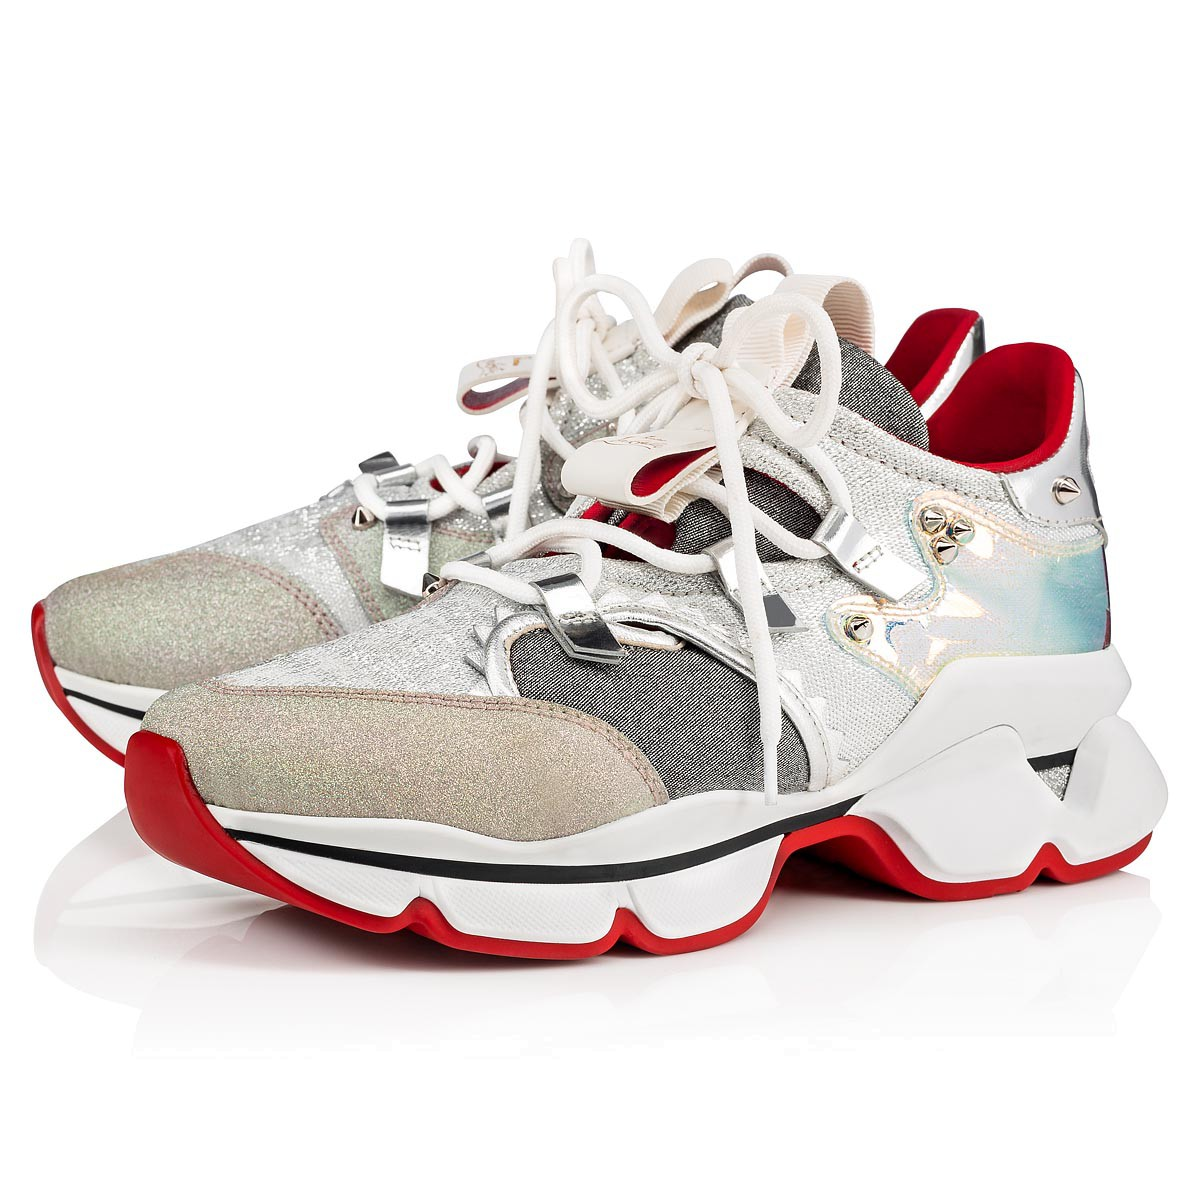 Shoes - Red Runner Donna - Christian Louboutin